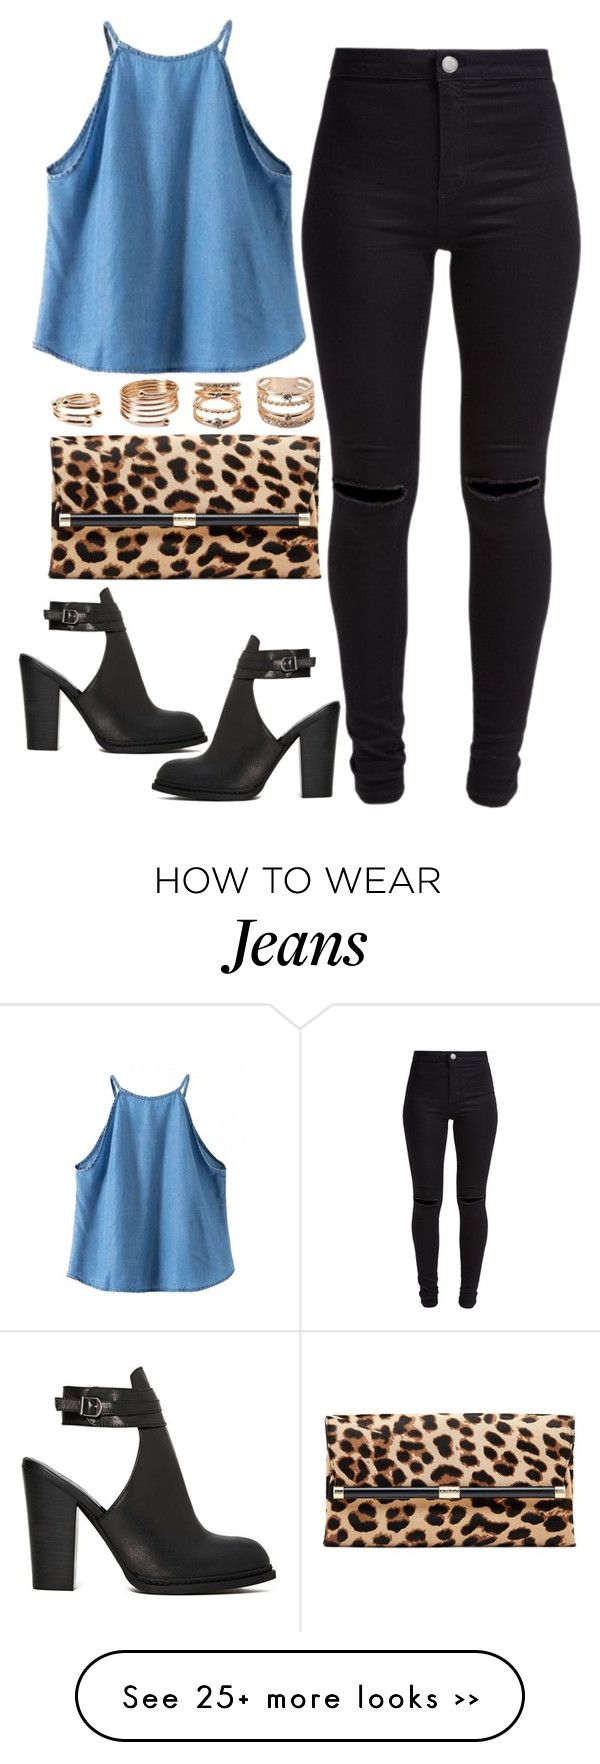 """""""939."""" by adc421 on Polyvore featuring New Look, Diane Von Furstenberg, Shoe Cult and Forever 21"""